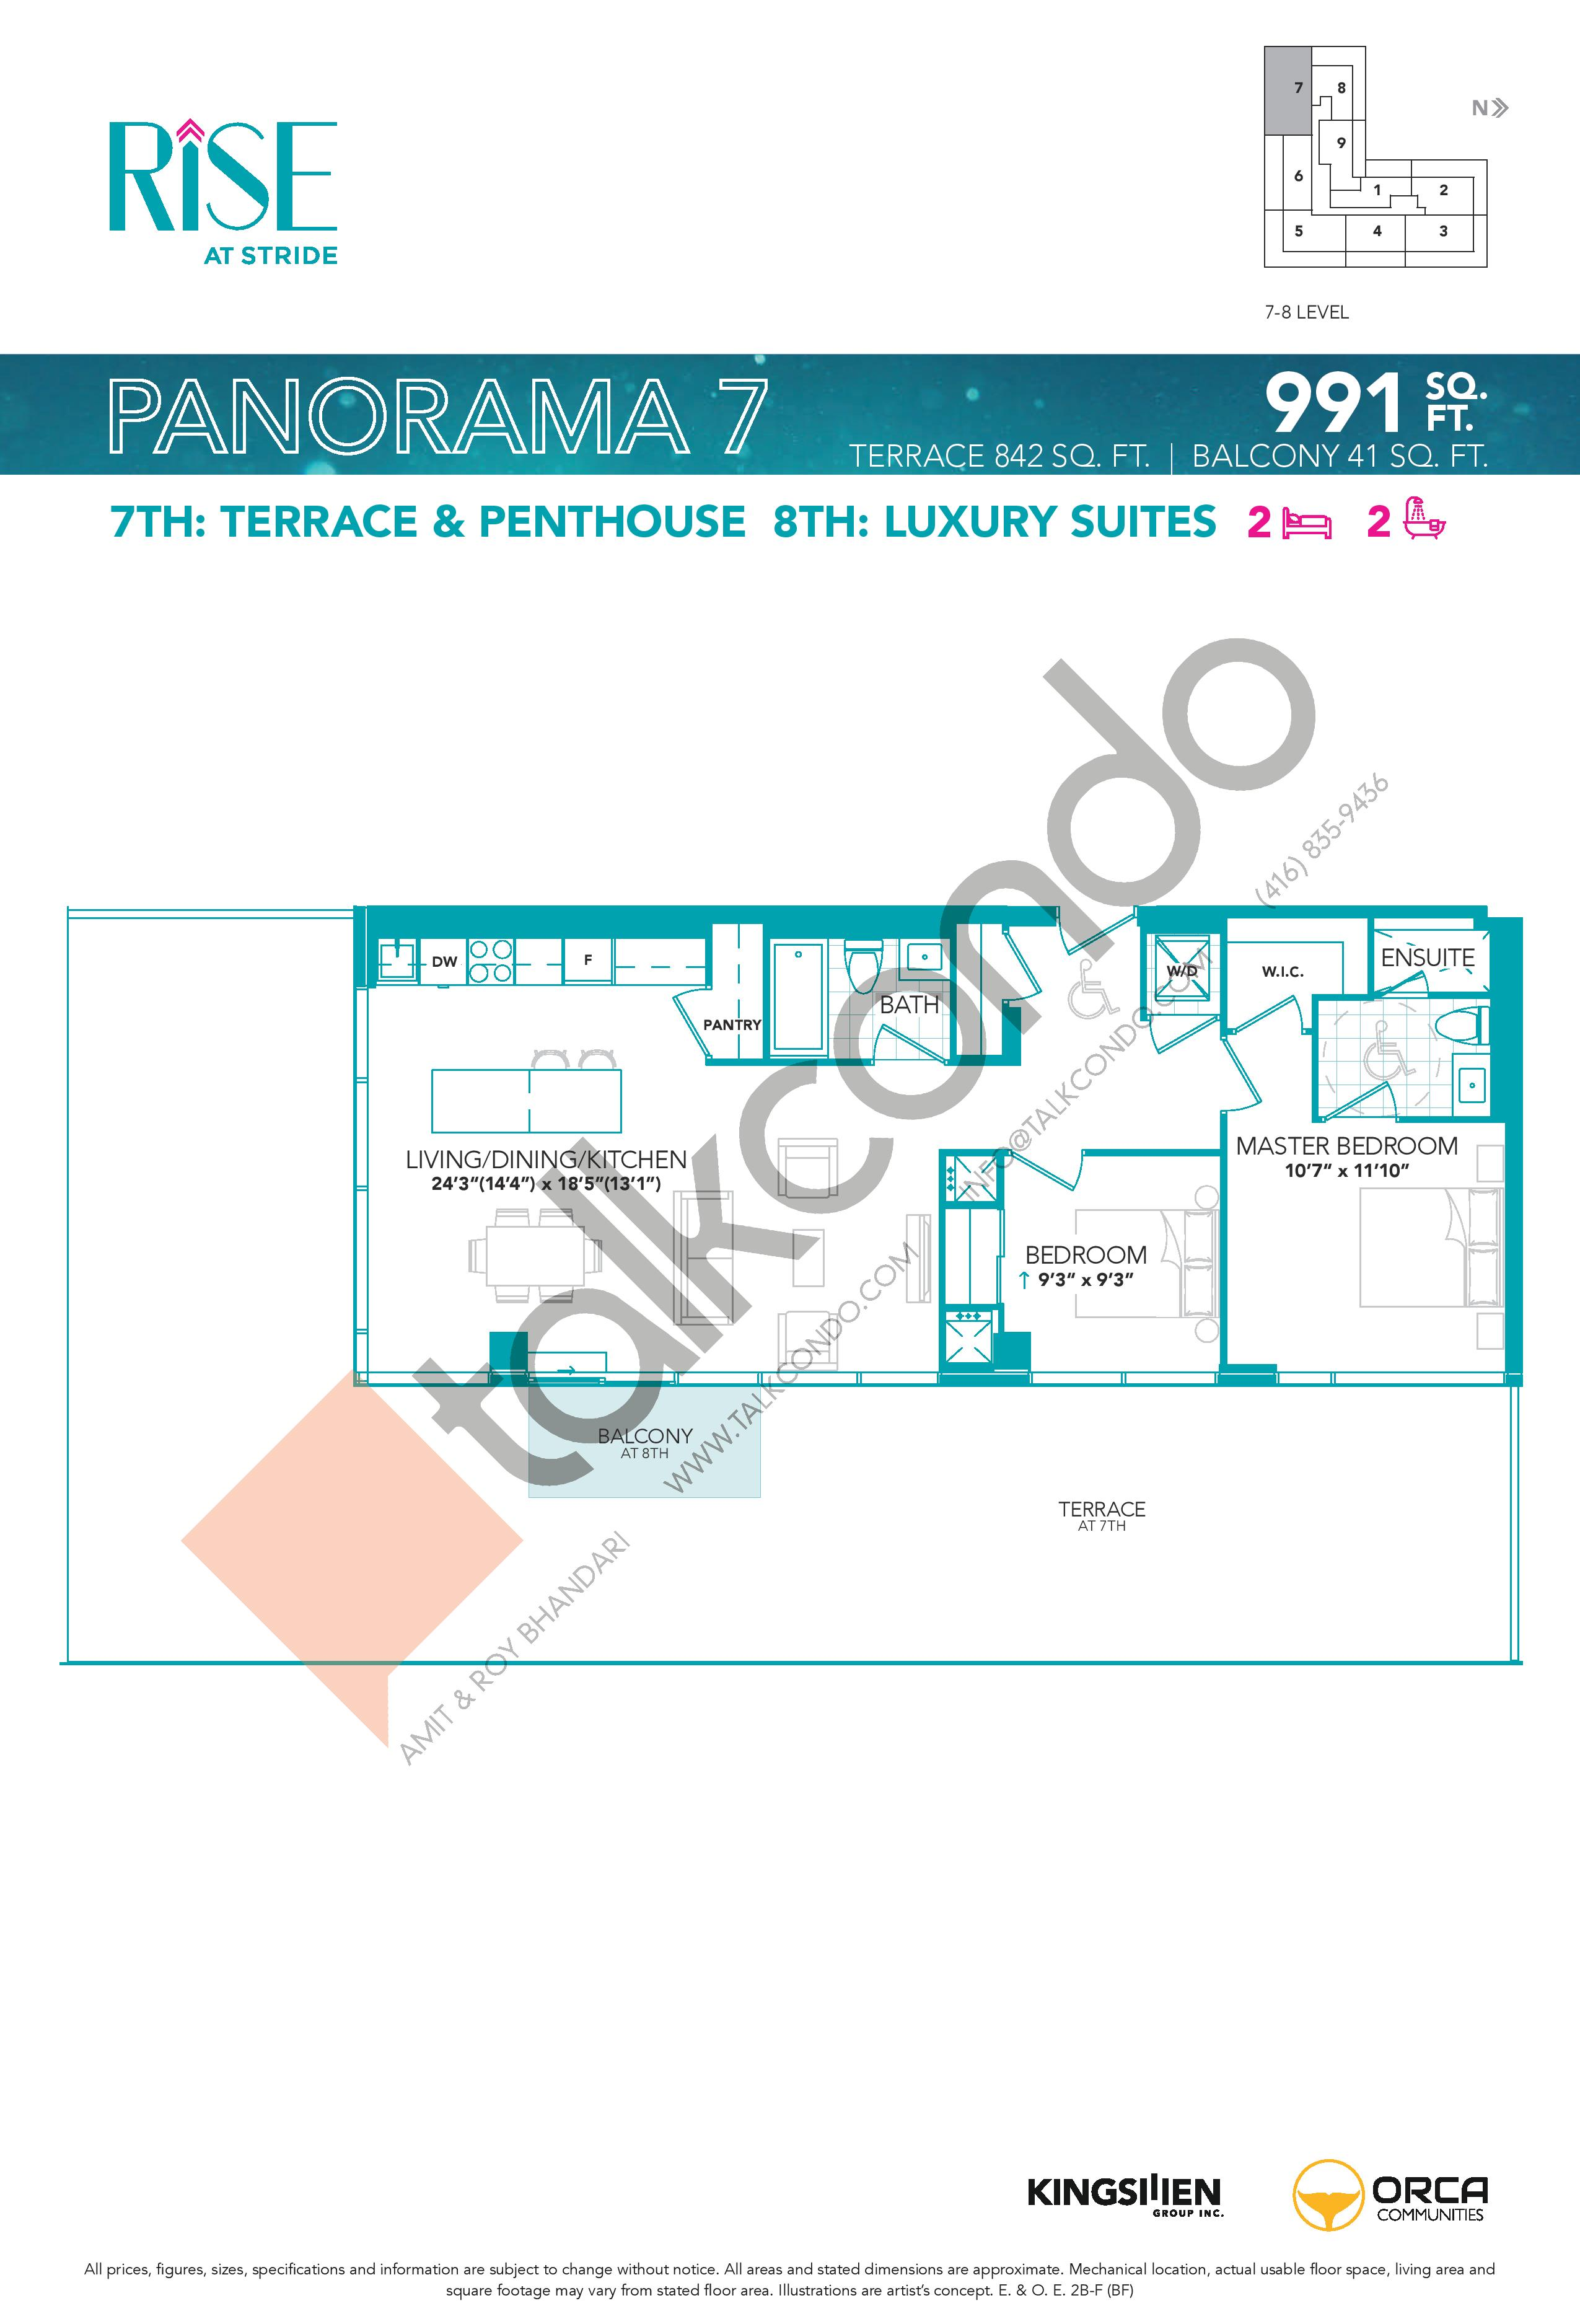 Panorama 7 Floor Plan at Rise at Stride Condos - 991 sq.ft